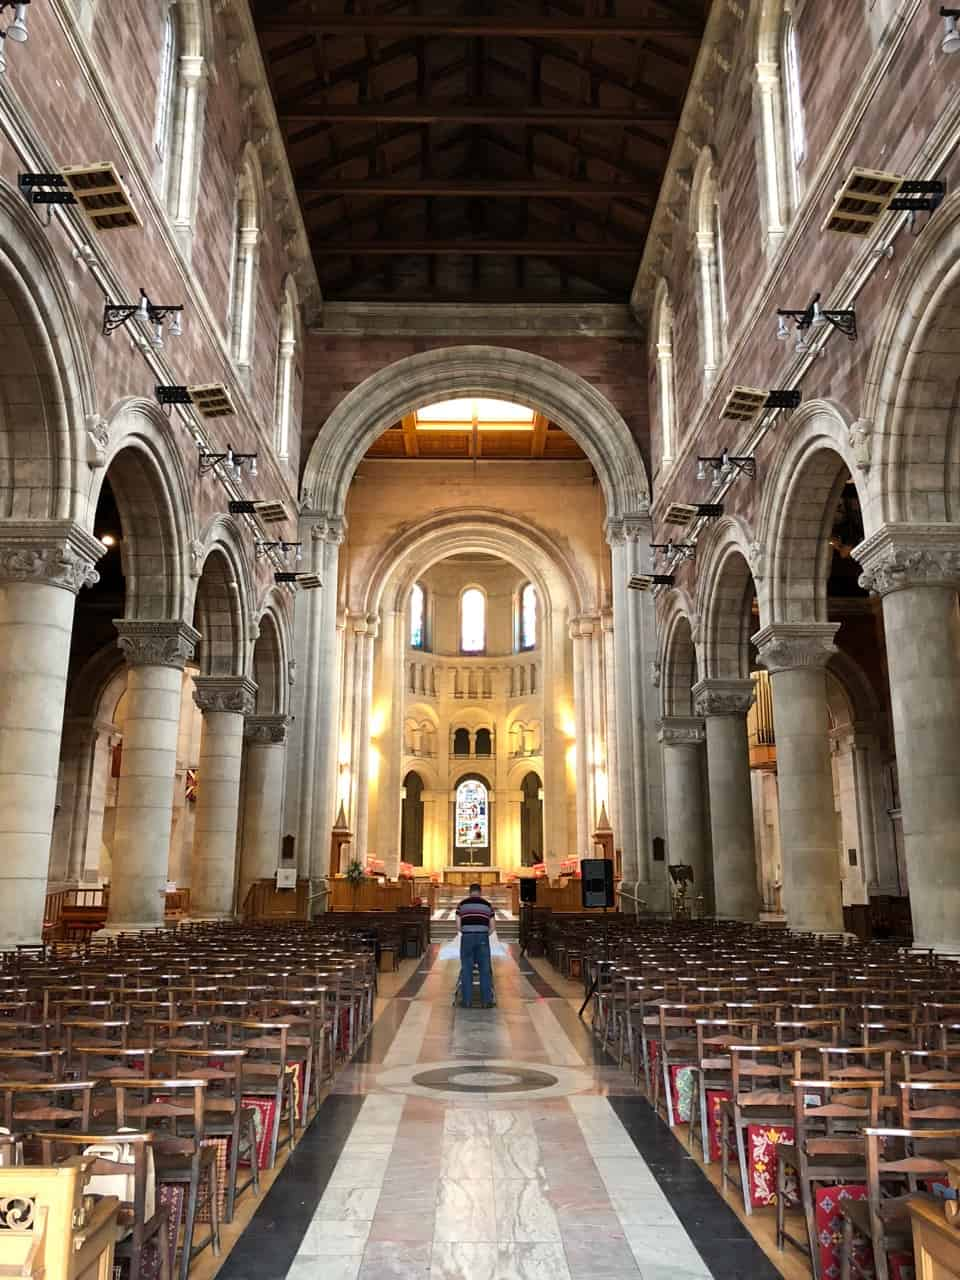 st-annes-cathedral-belfast-interior-photo